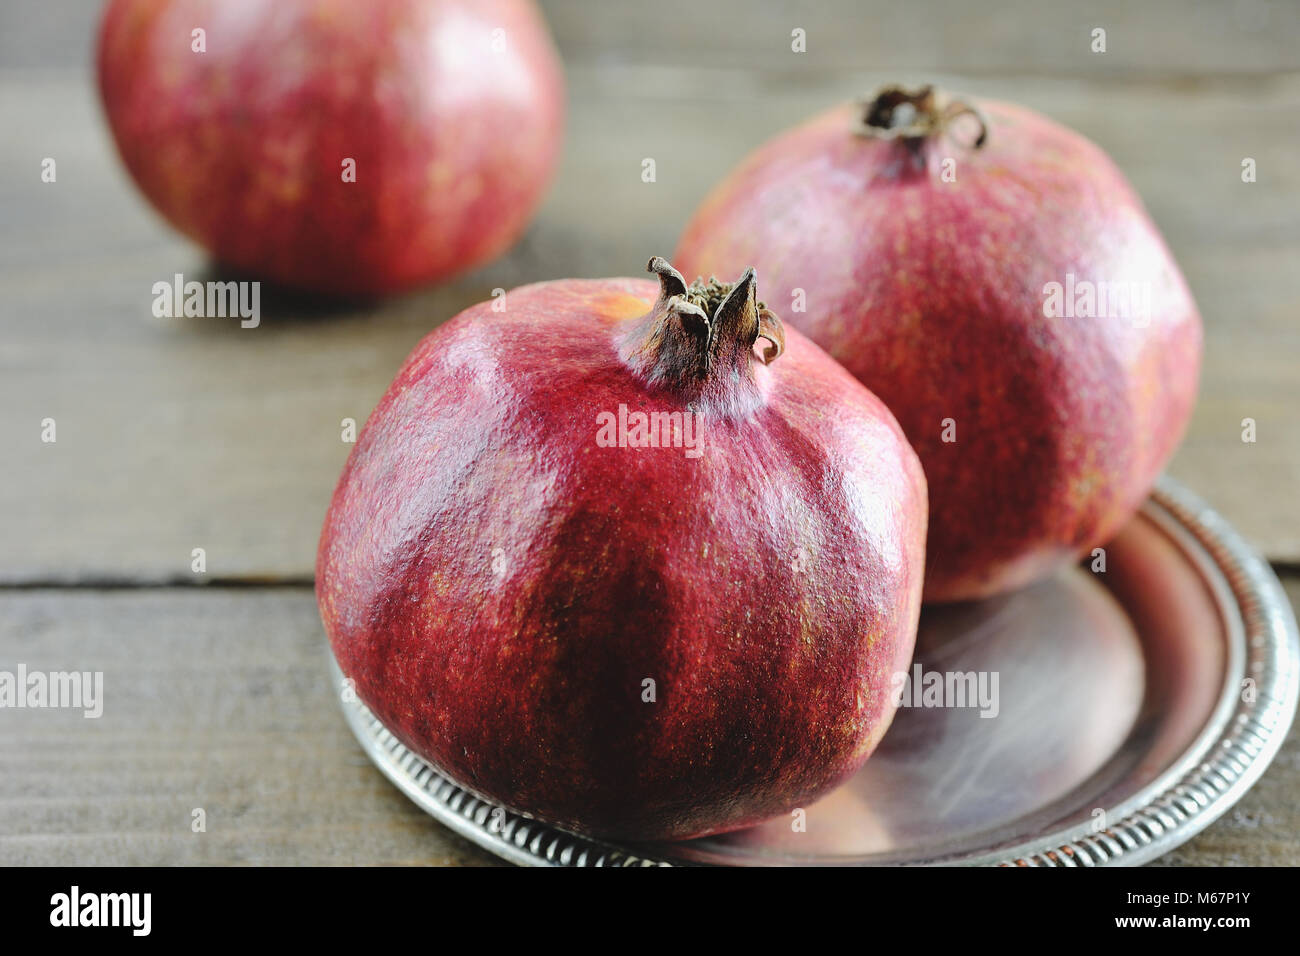 Red juicy fruit pomegranate in a tray - Stock Image